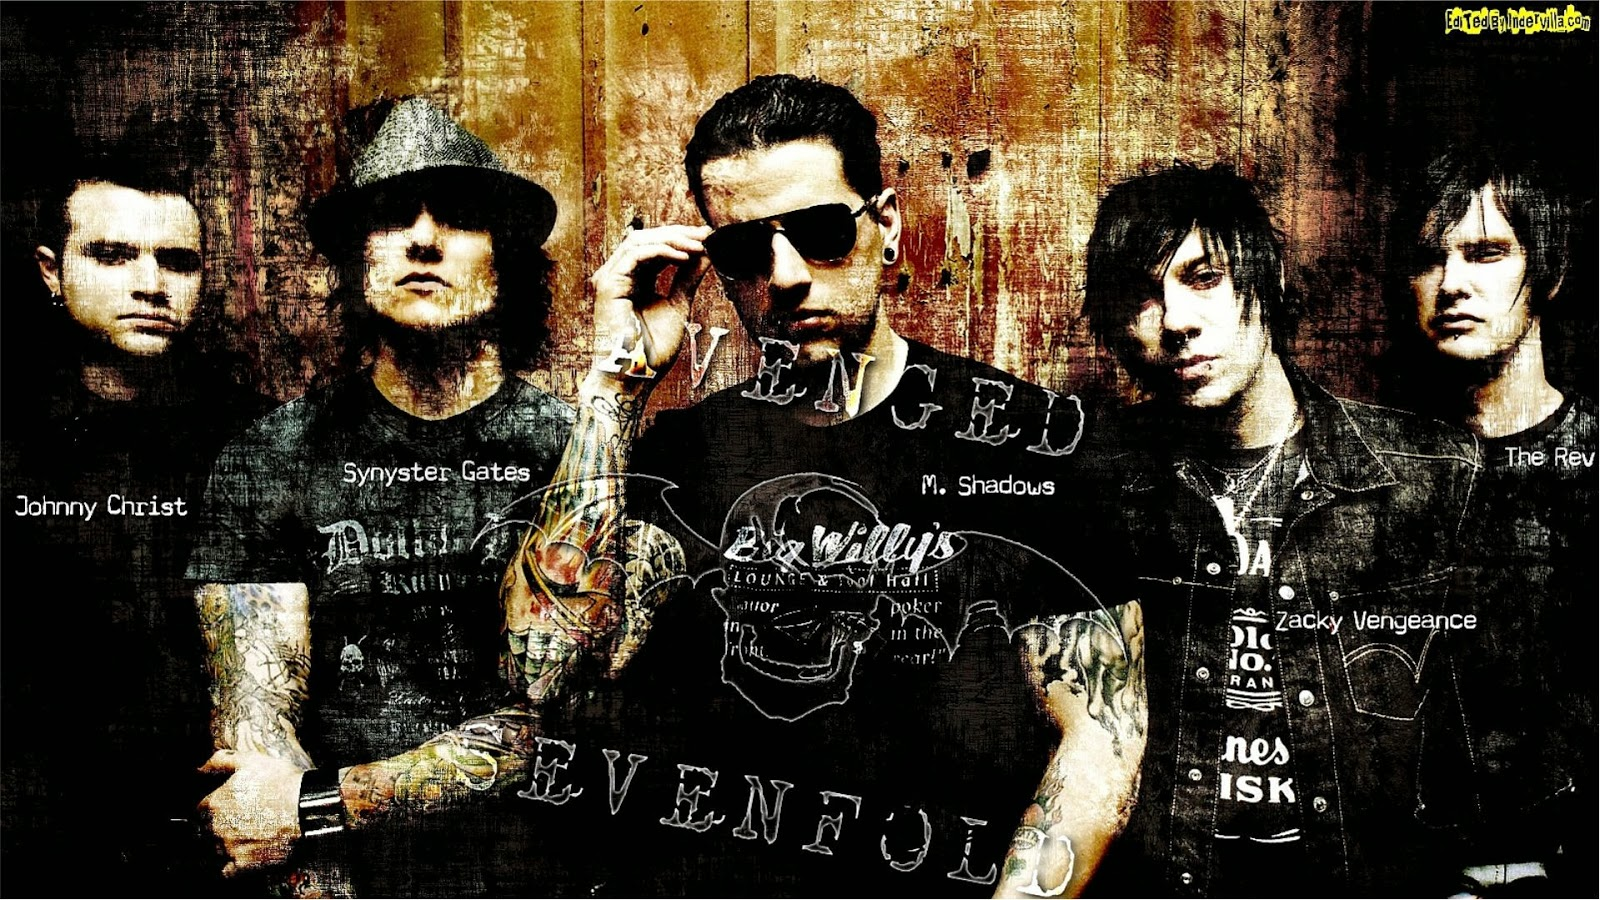 1600x900px avenged sevenfold hd wallpaper wallpapersafari wallpaper avenged sevenfold hd terbaru deloiz wallpaper 1600x900 download voltagebd Choice Image